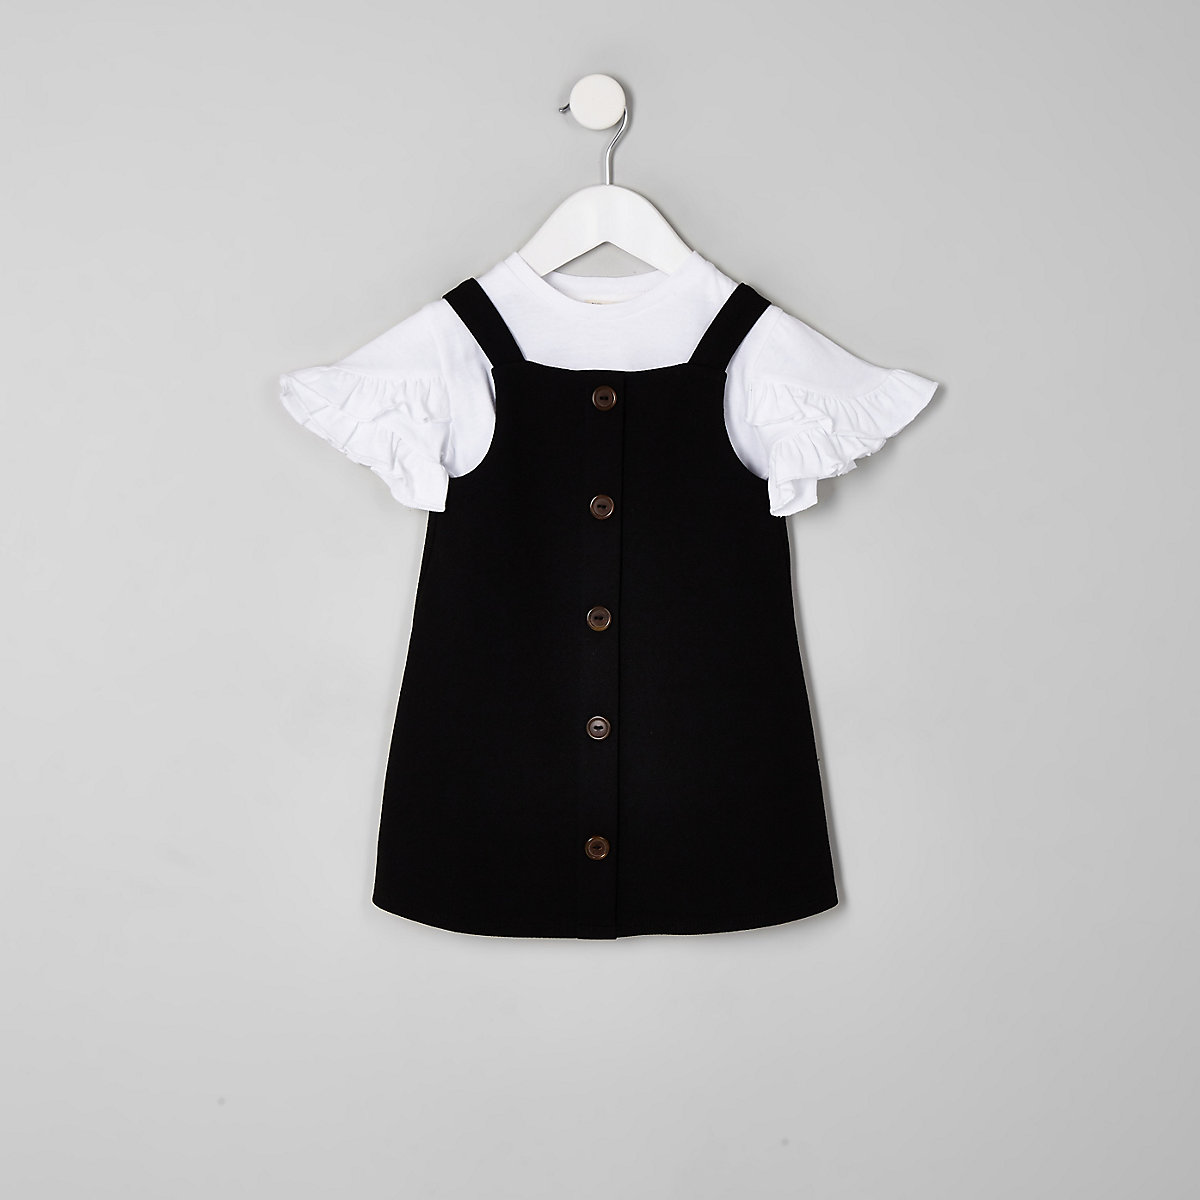 Mini girls black pinafore dress outfit